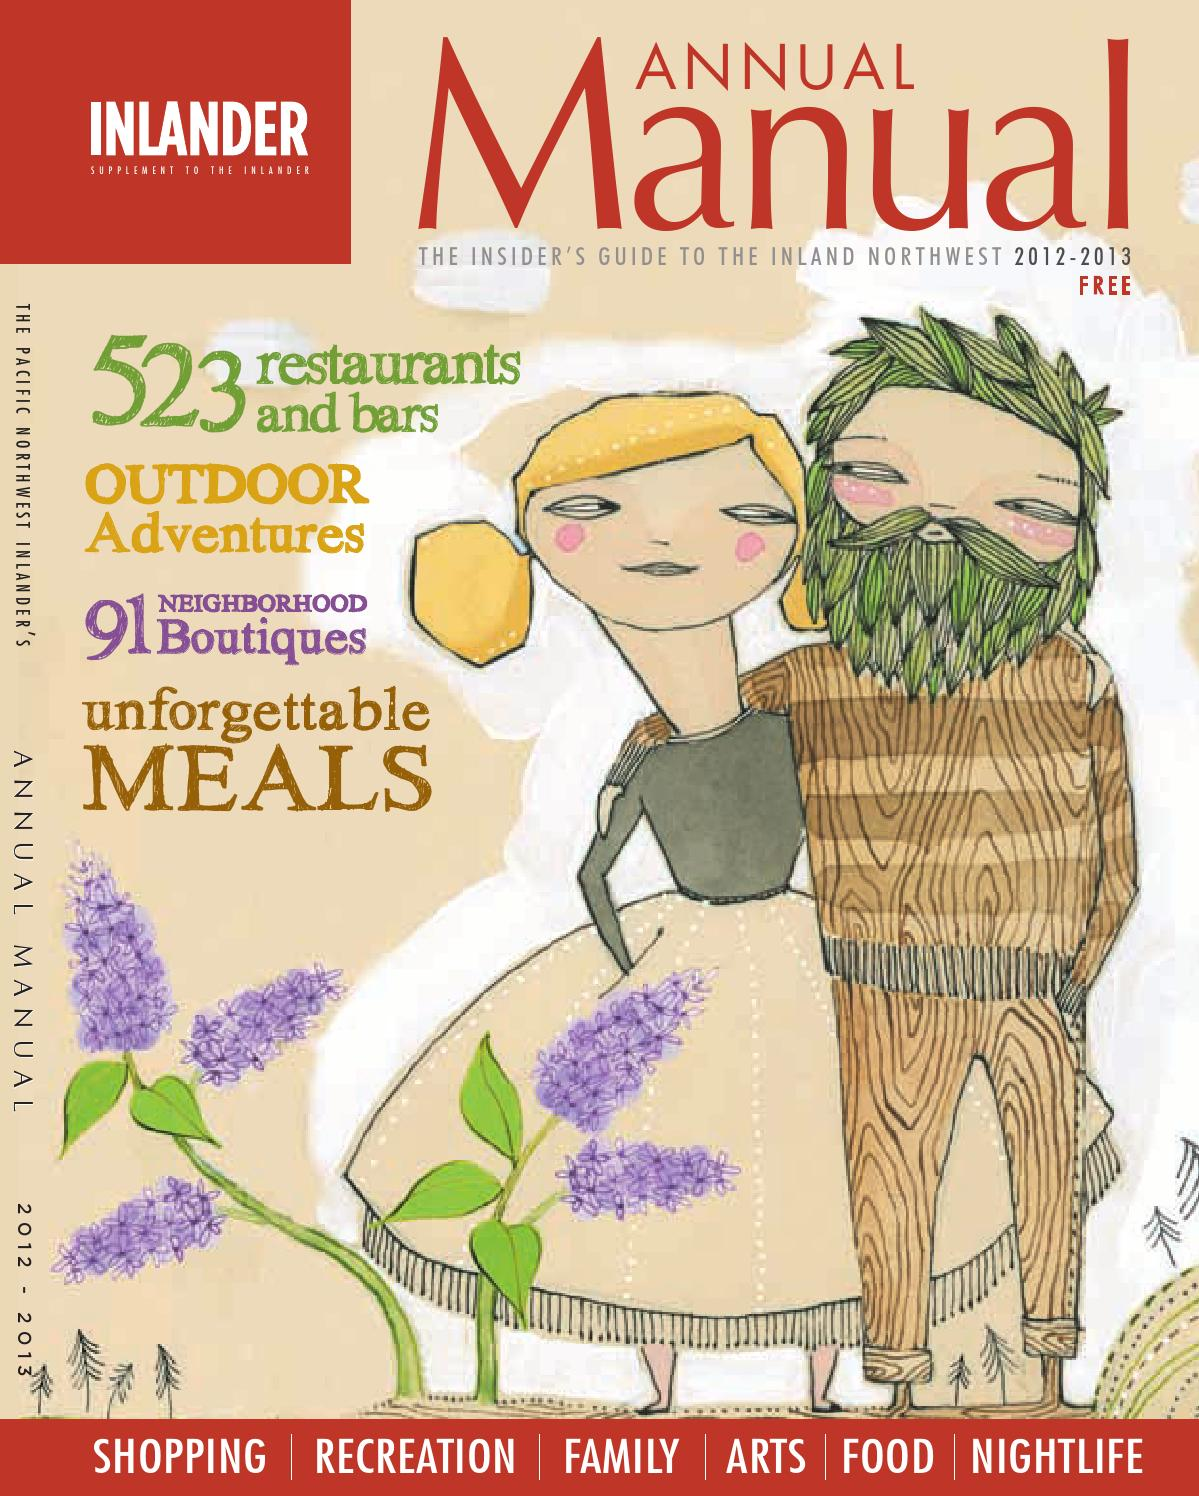 Annual Manual 2012-13 by The Inlander - issuu 4fc4153074